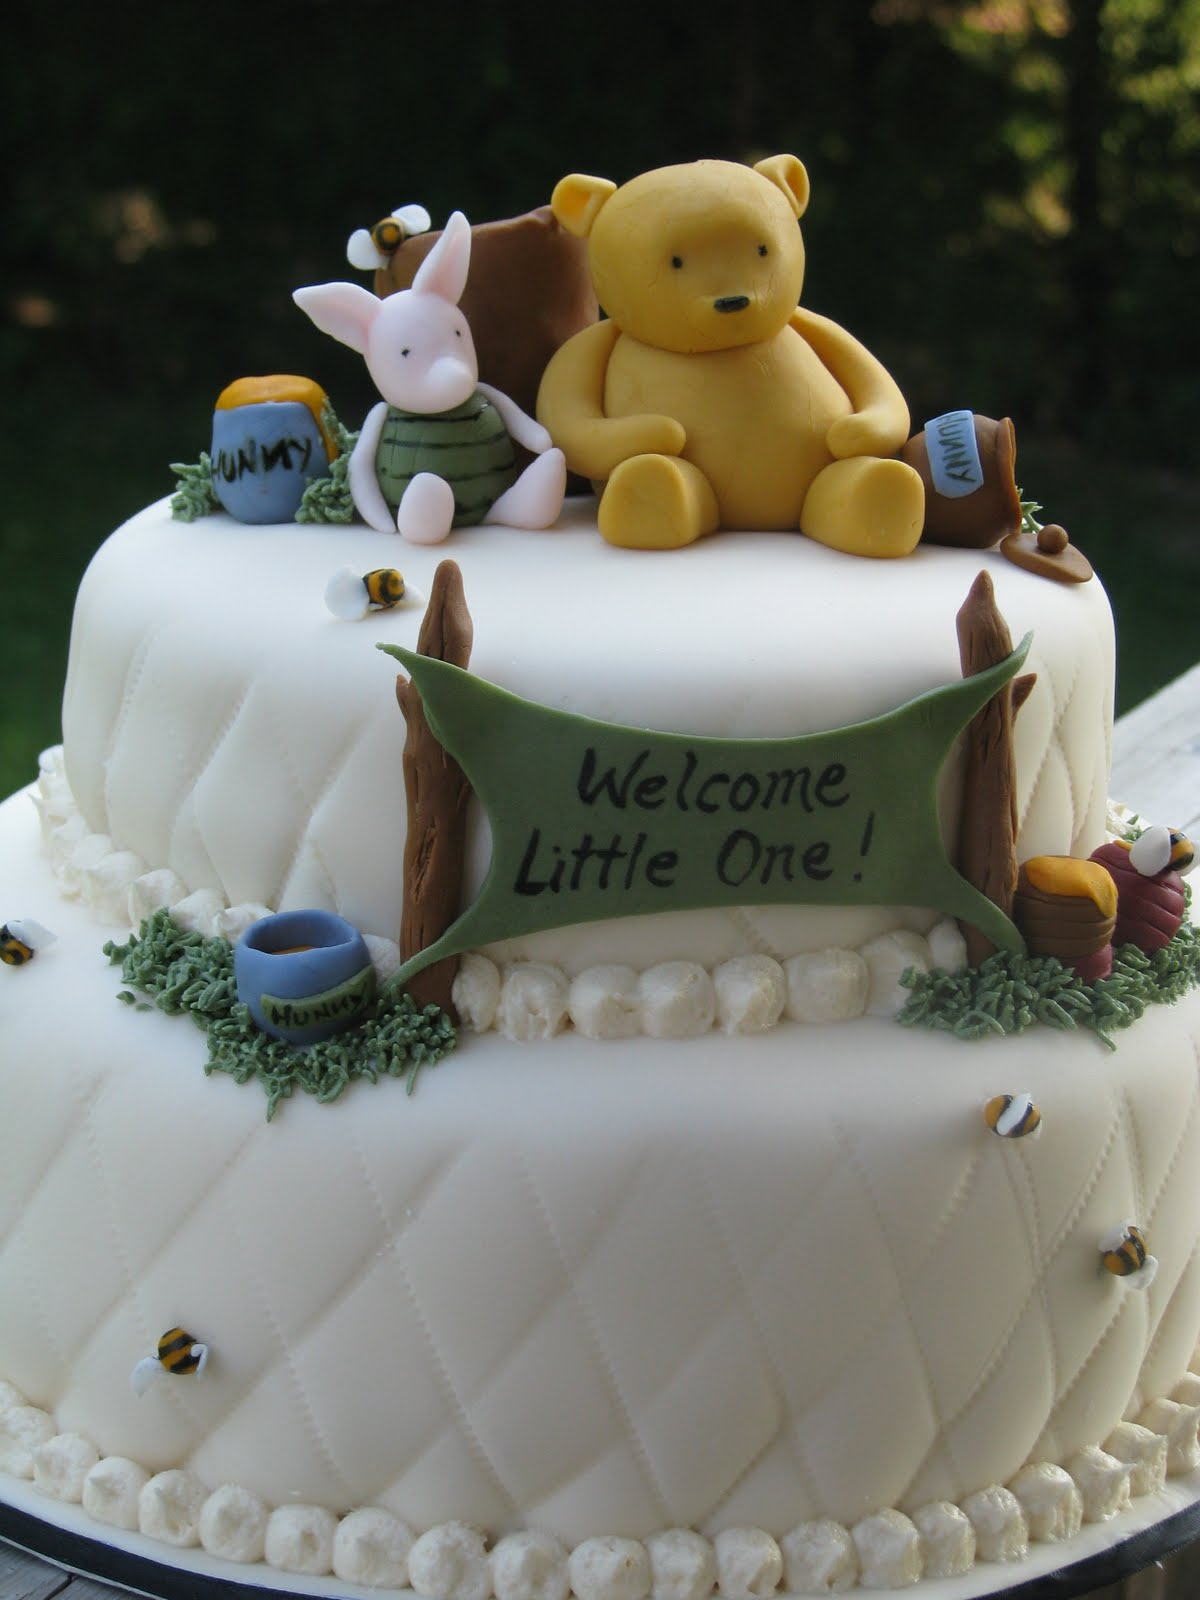 velvet cake was made for a classic winnie the pooh themed baby shower